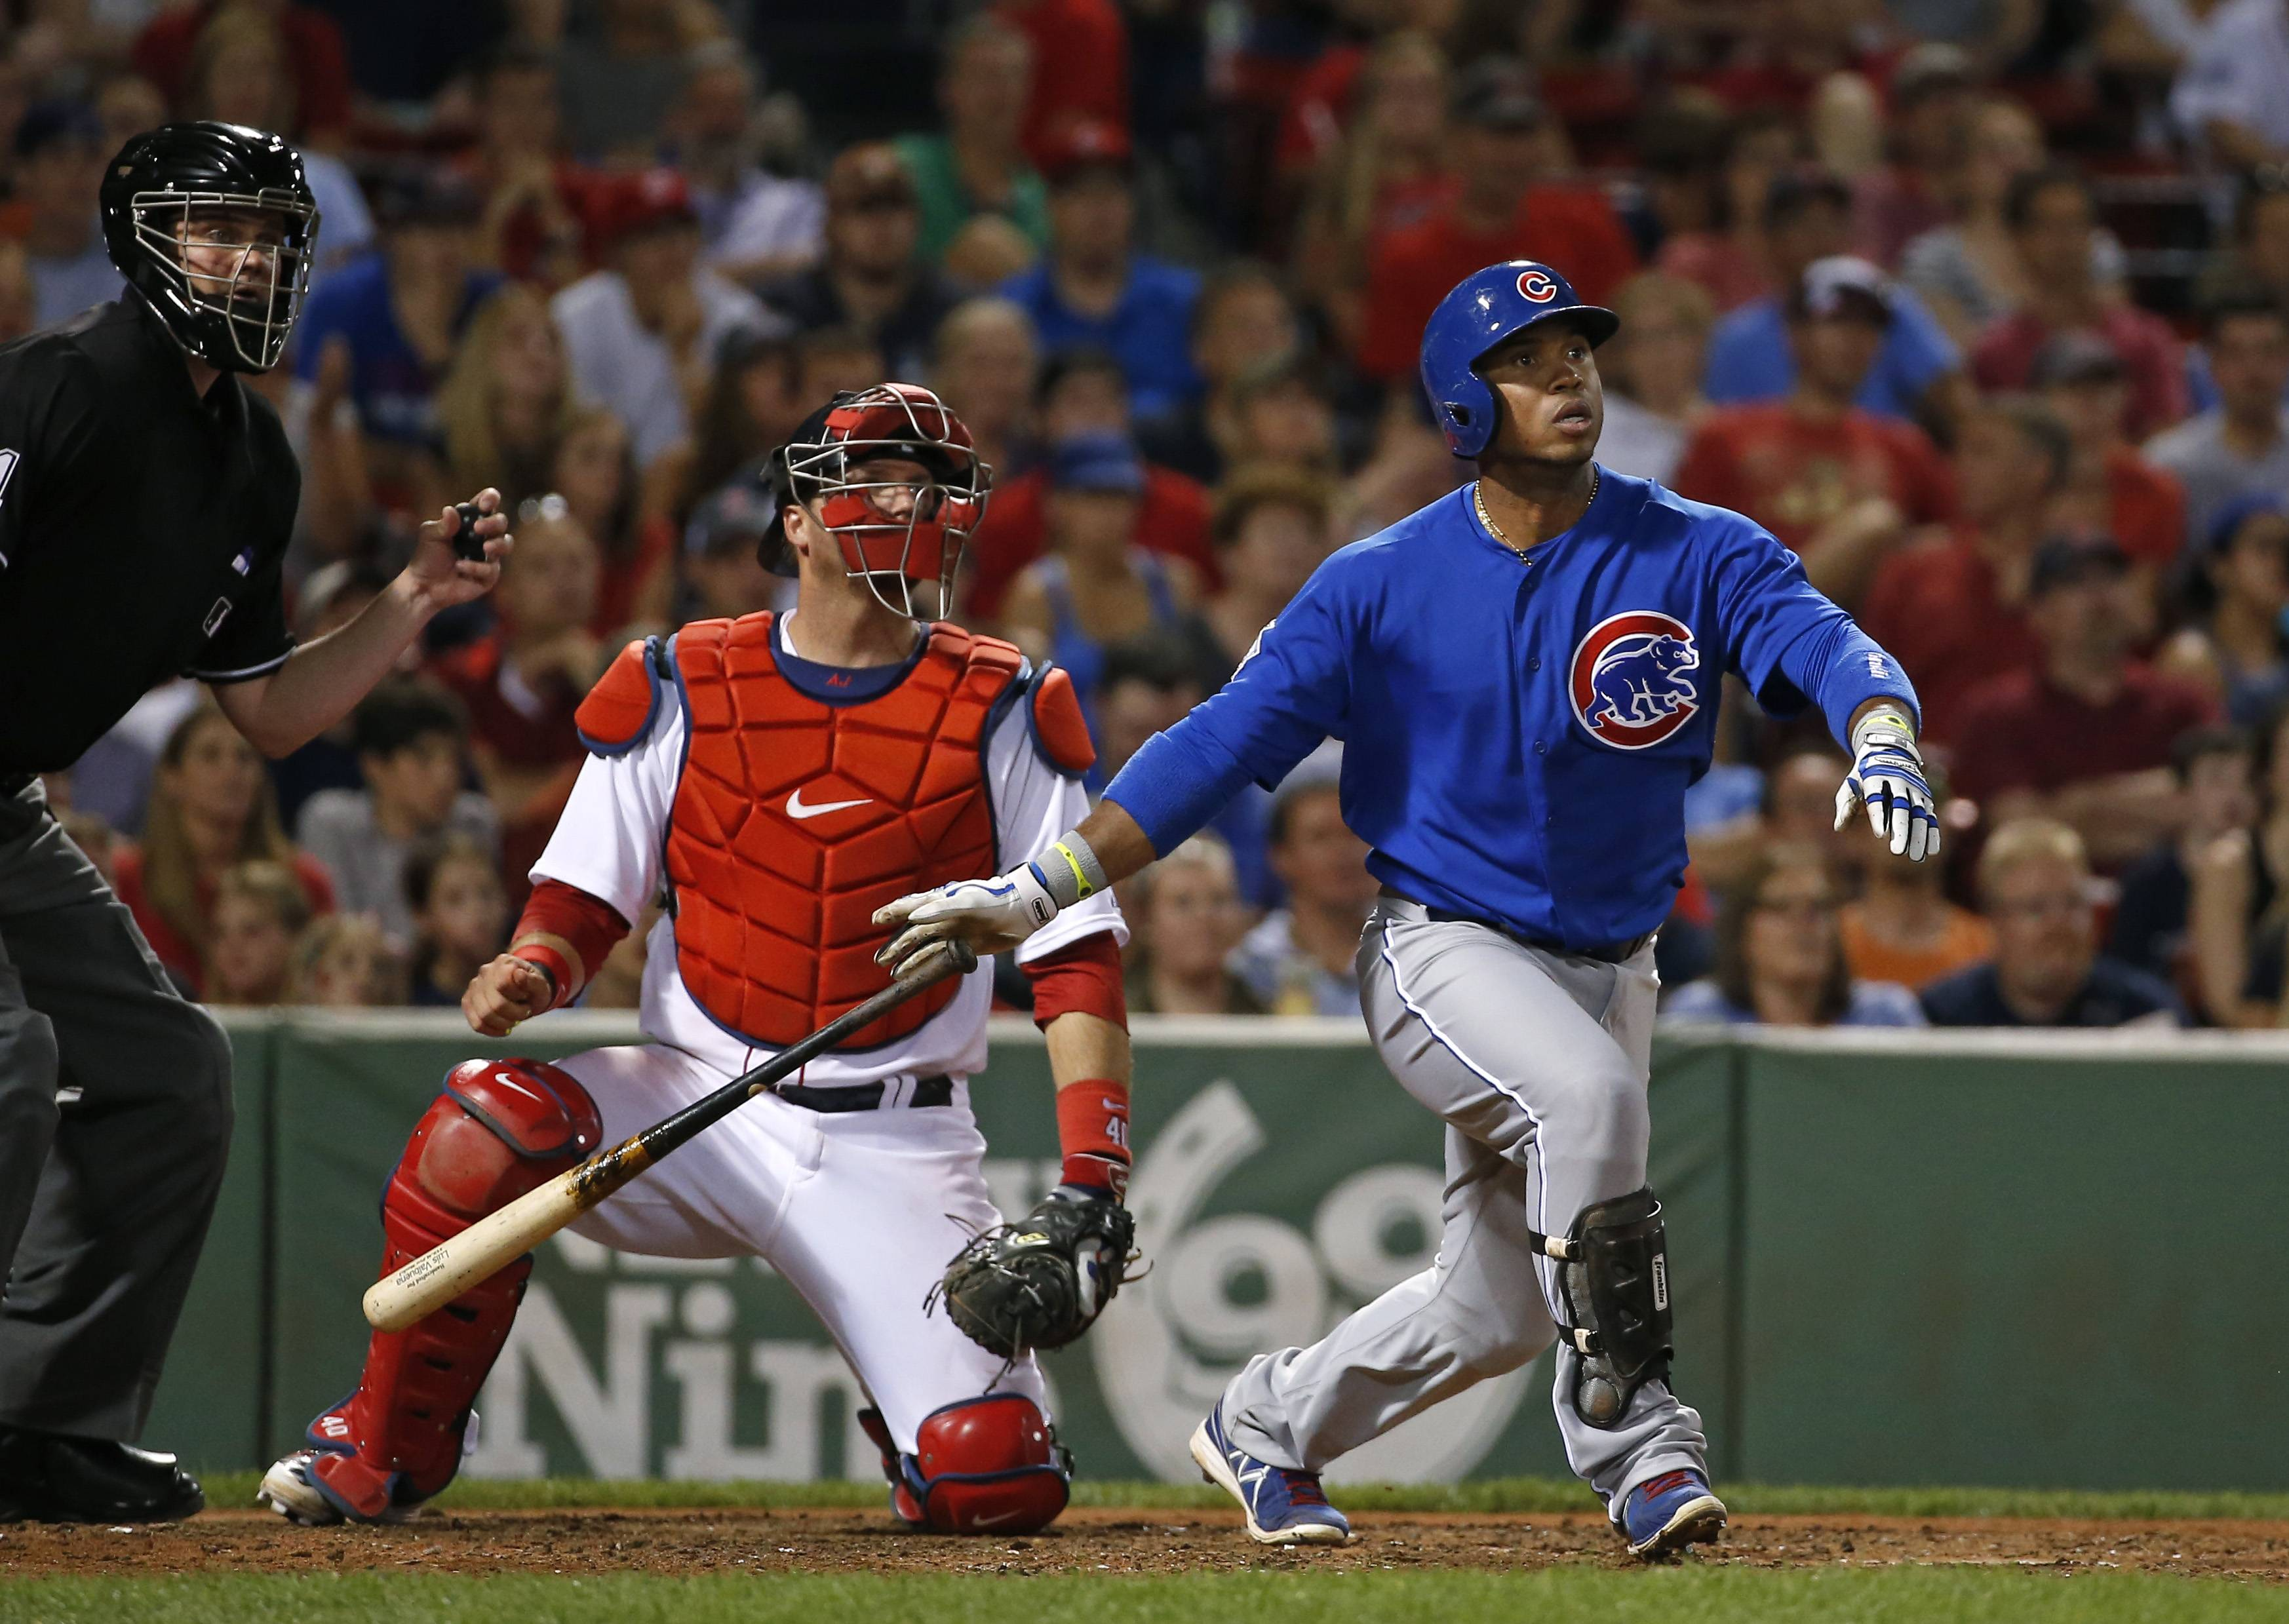 The Cubs' Luis Valbuena watches his RBI sacrifice fly in the ninth inning of Tuesday night's game at Fenway Park in Boston. The Cubs beat the Red Sox 2-1.